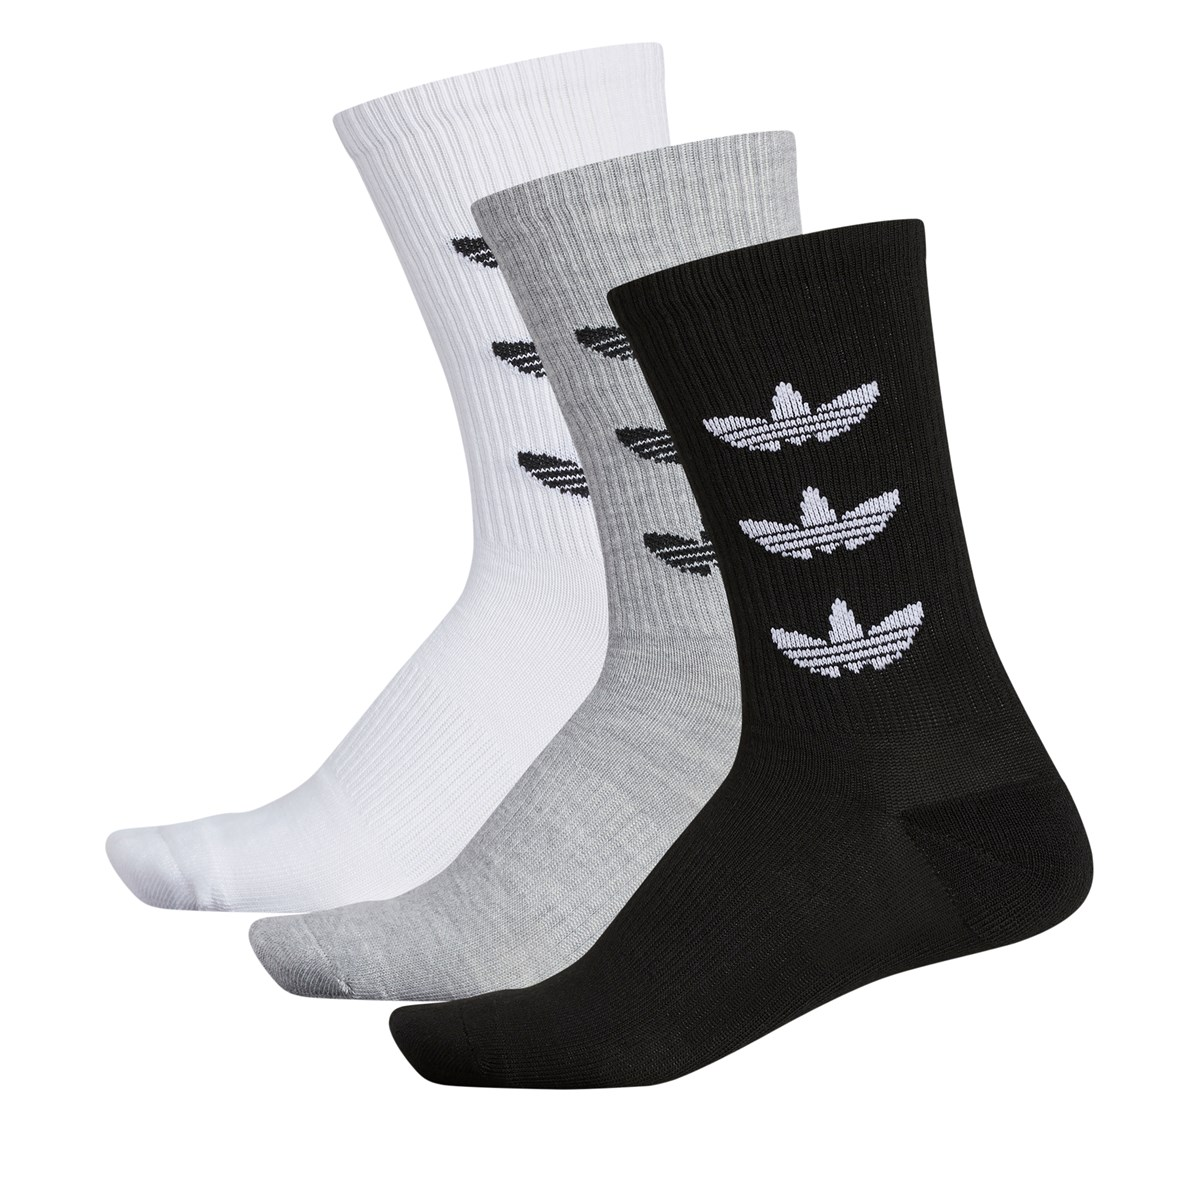 Men's 3 pair pack of crew socks